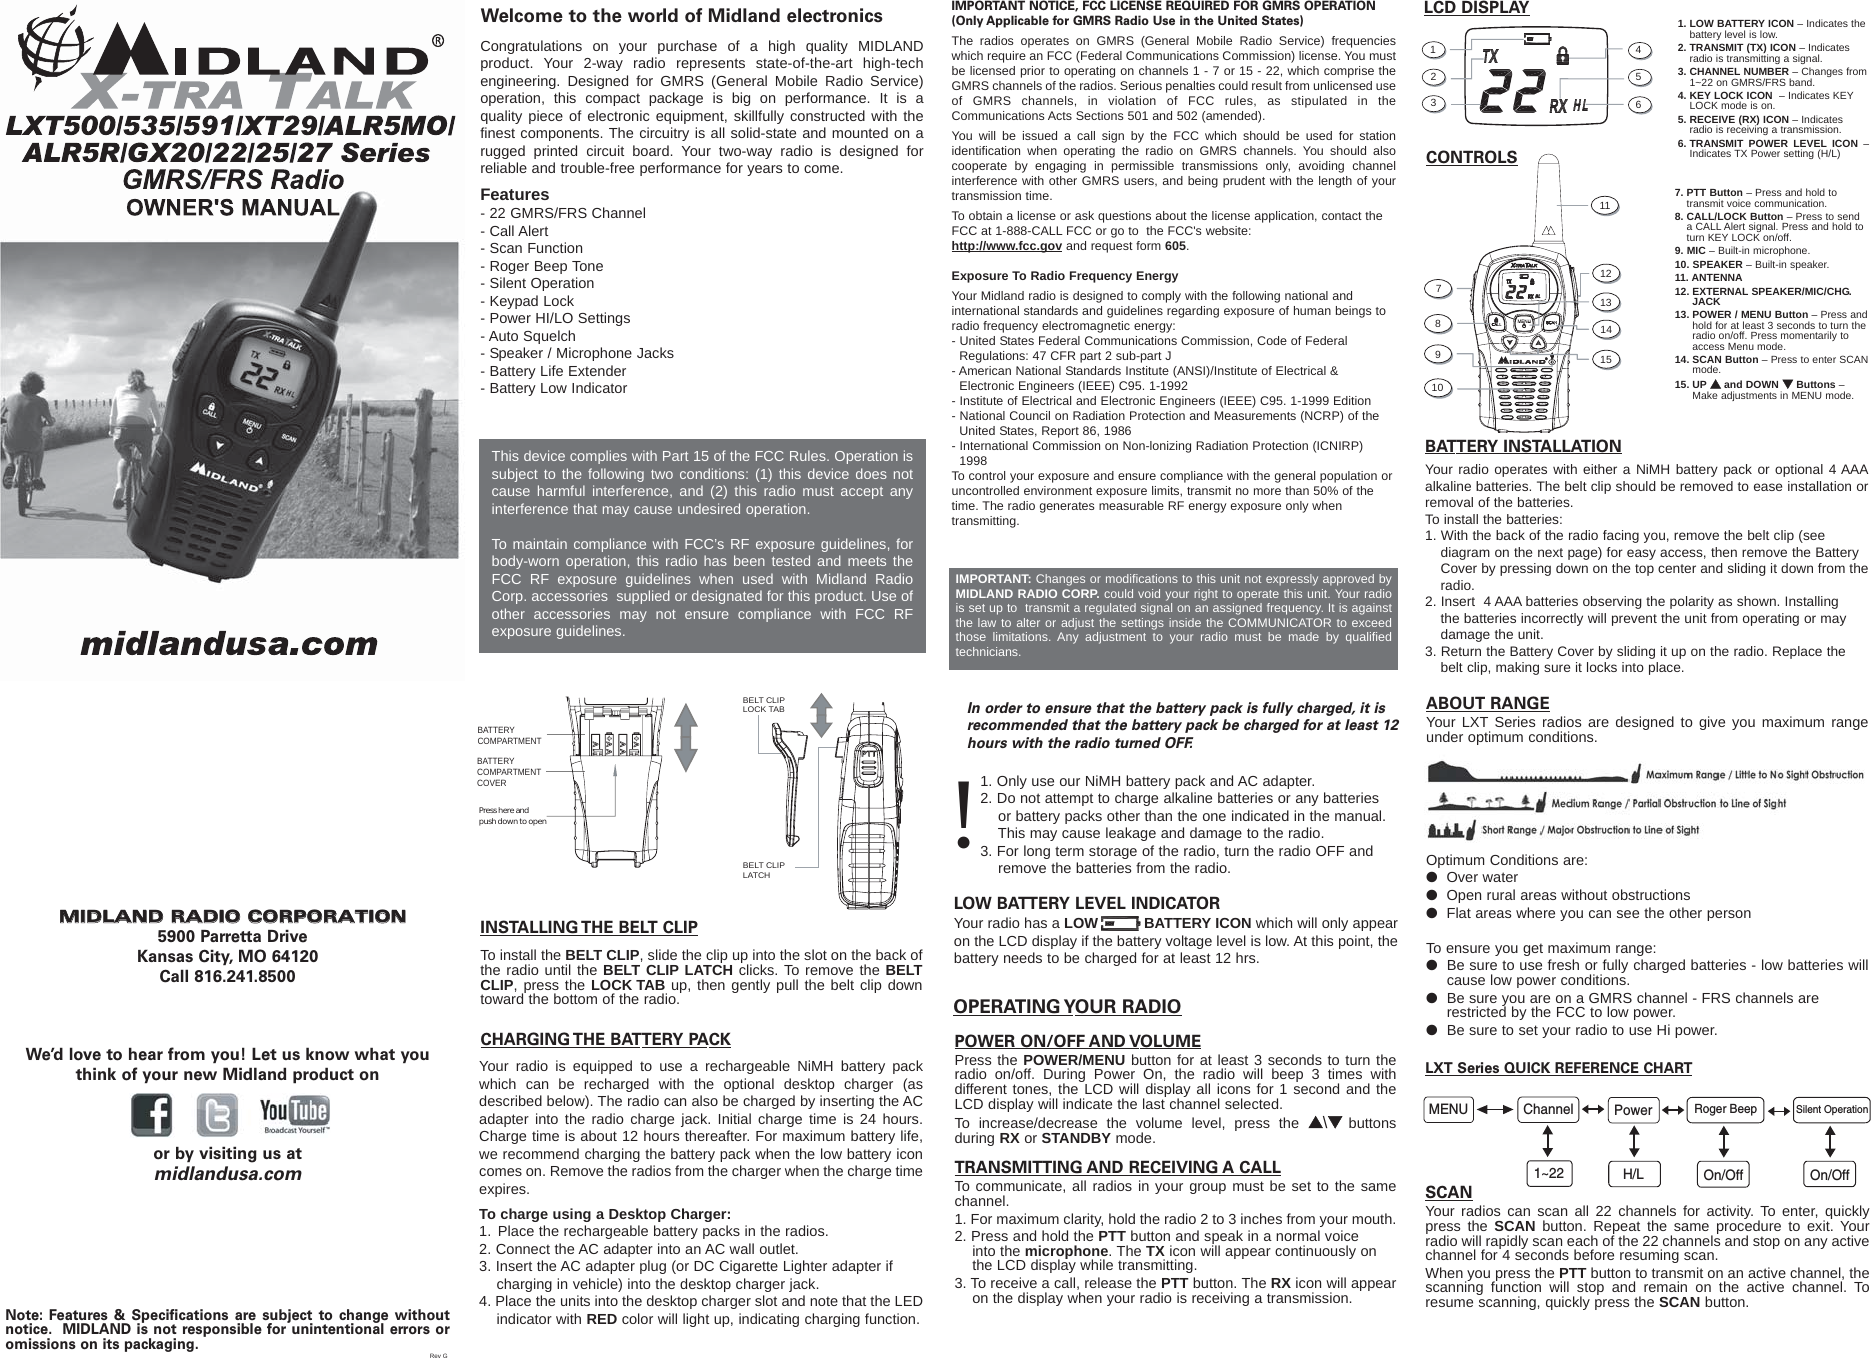 midland radio lxt535pa gmrs    frs user manual lxt500 owner s manual front rev g qxp